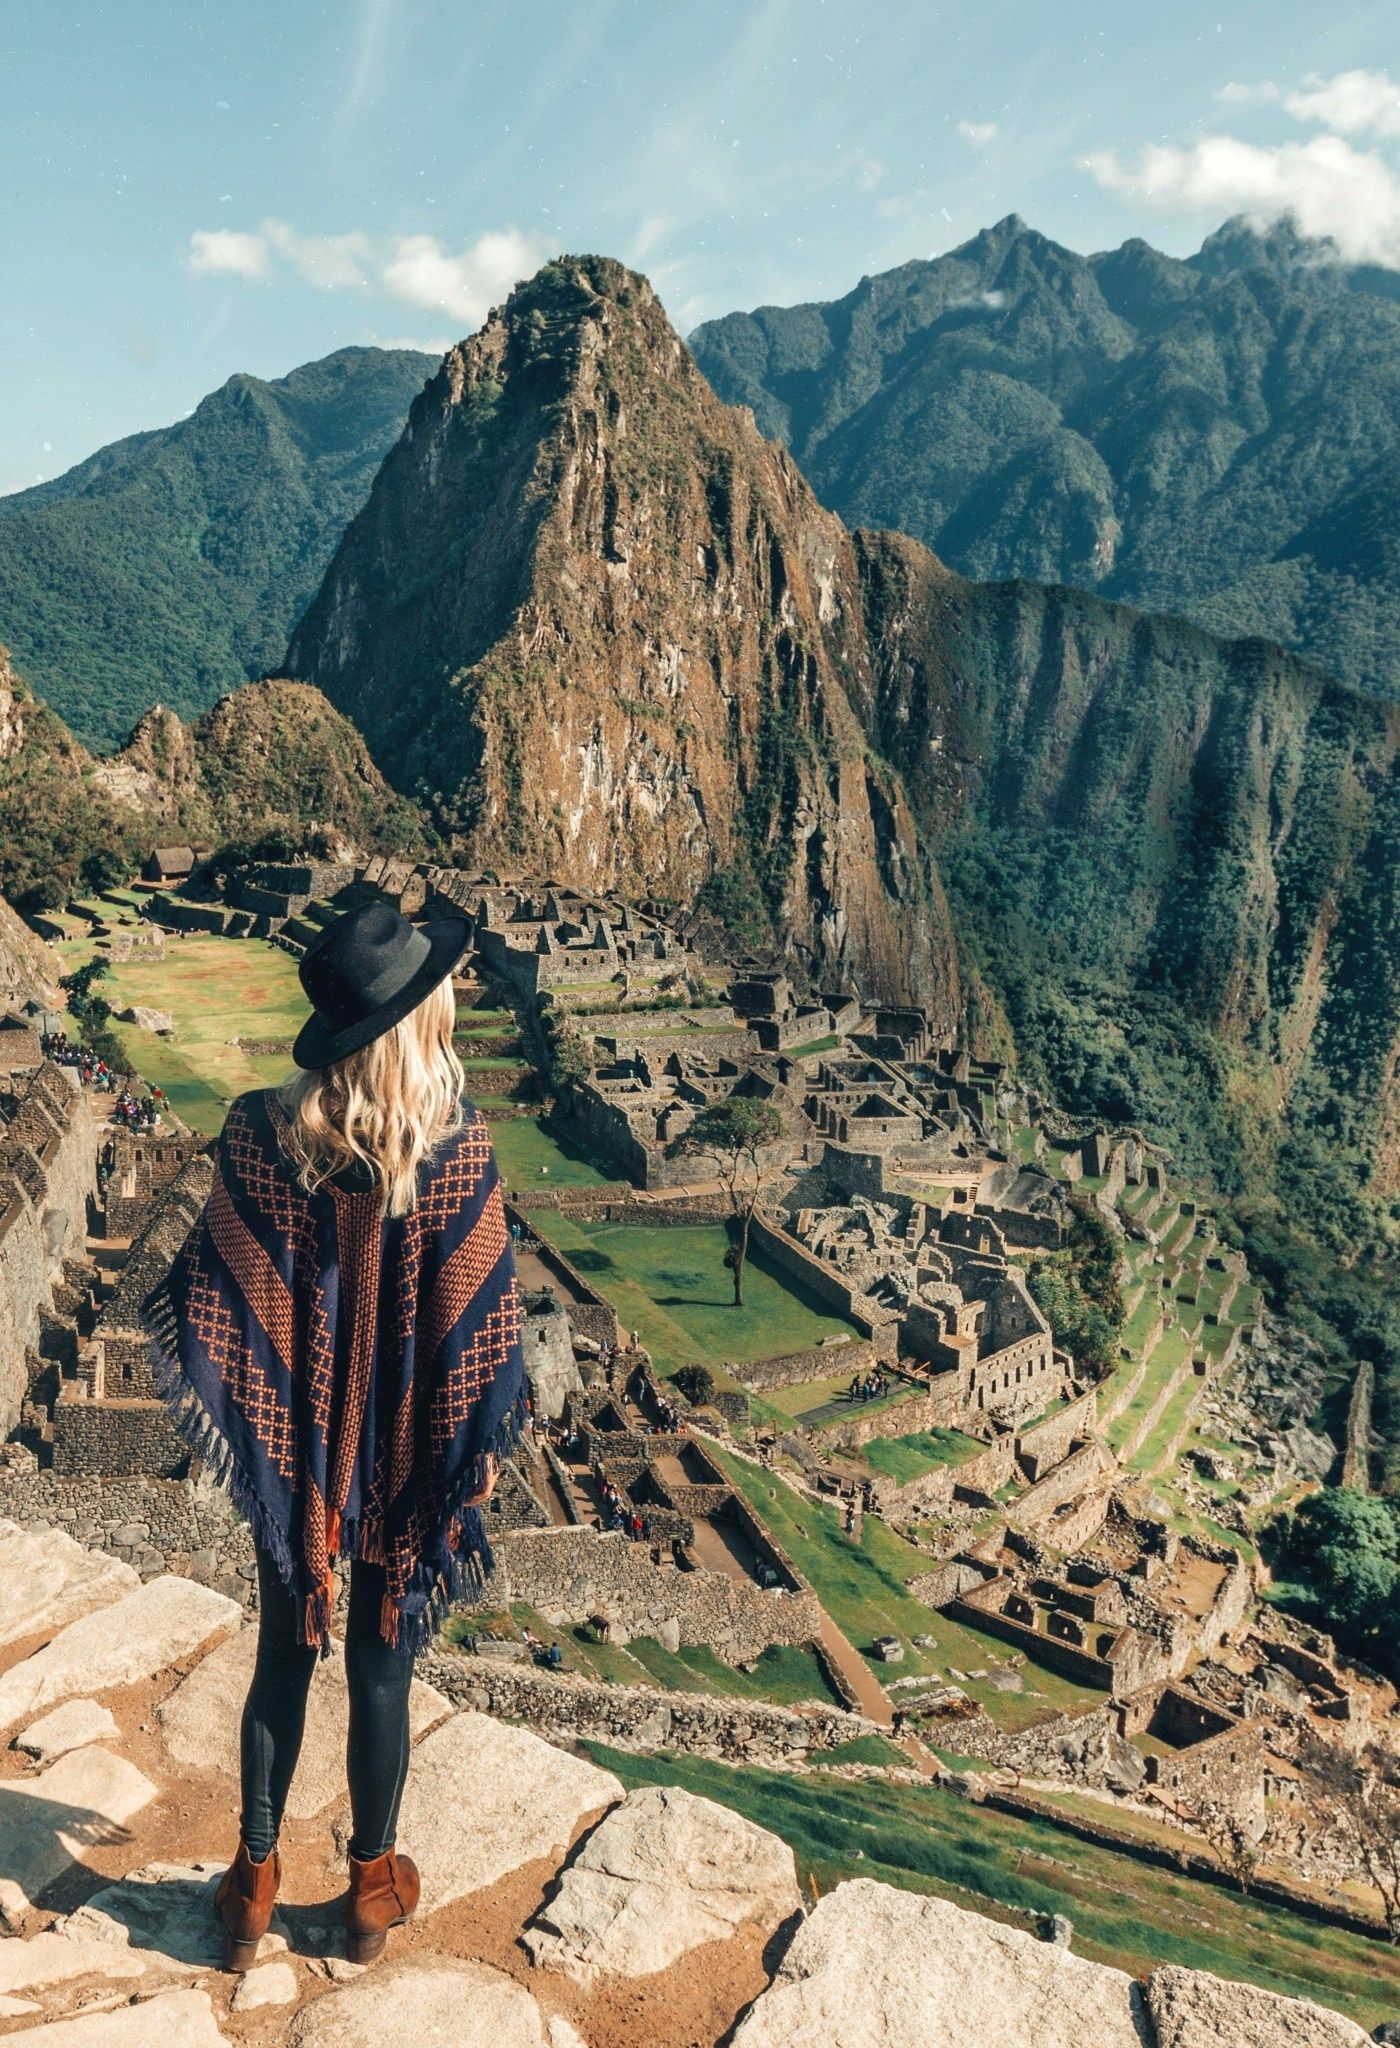 be98f1295b34917d49ea9d66a0fa7677 - How Long To Get To Machu Picchu From Lima